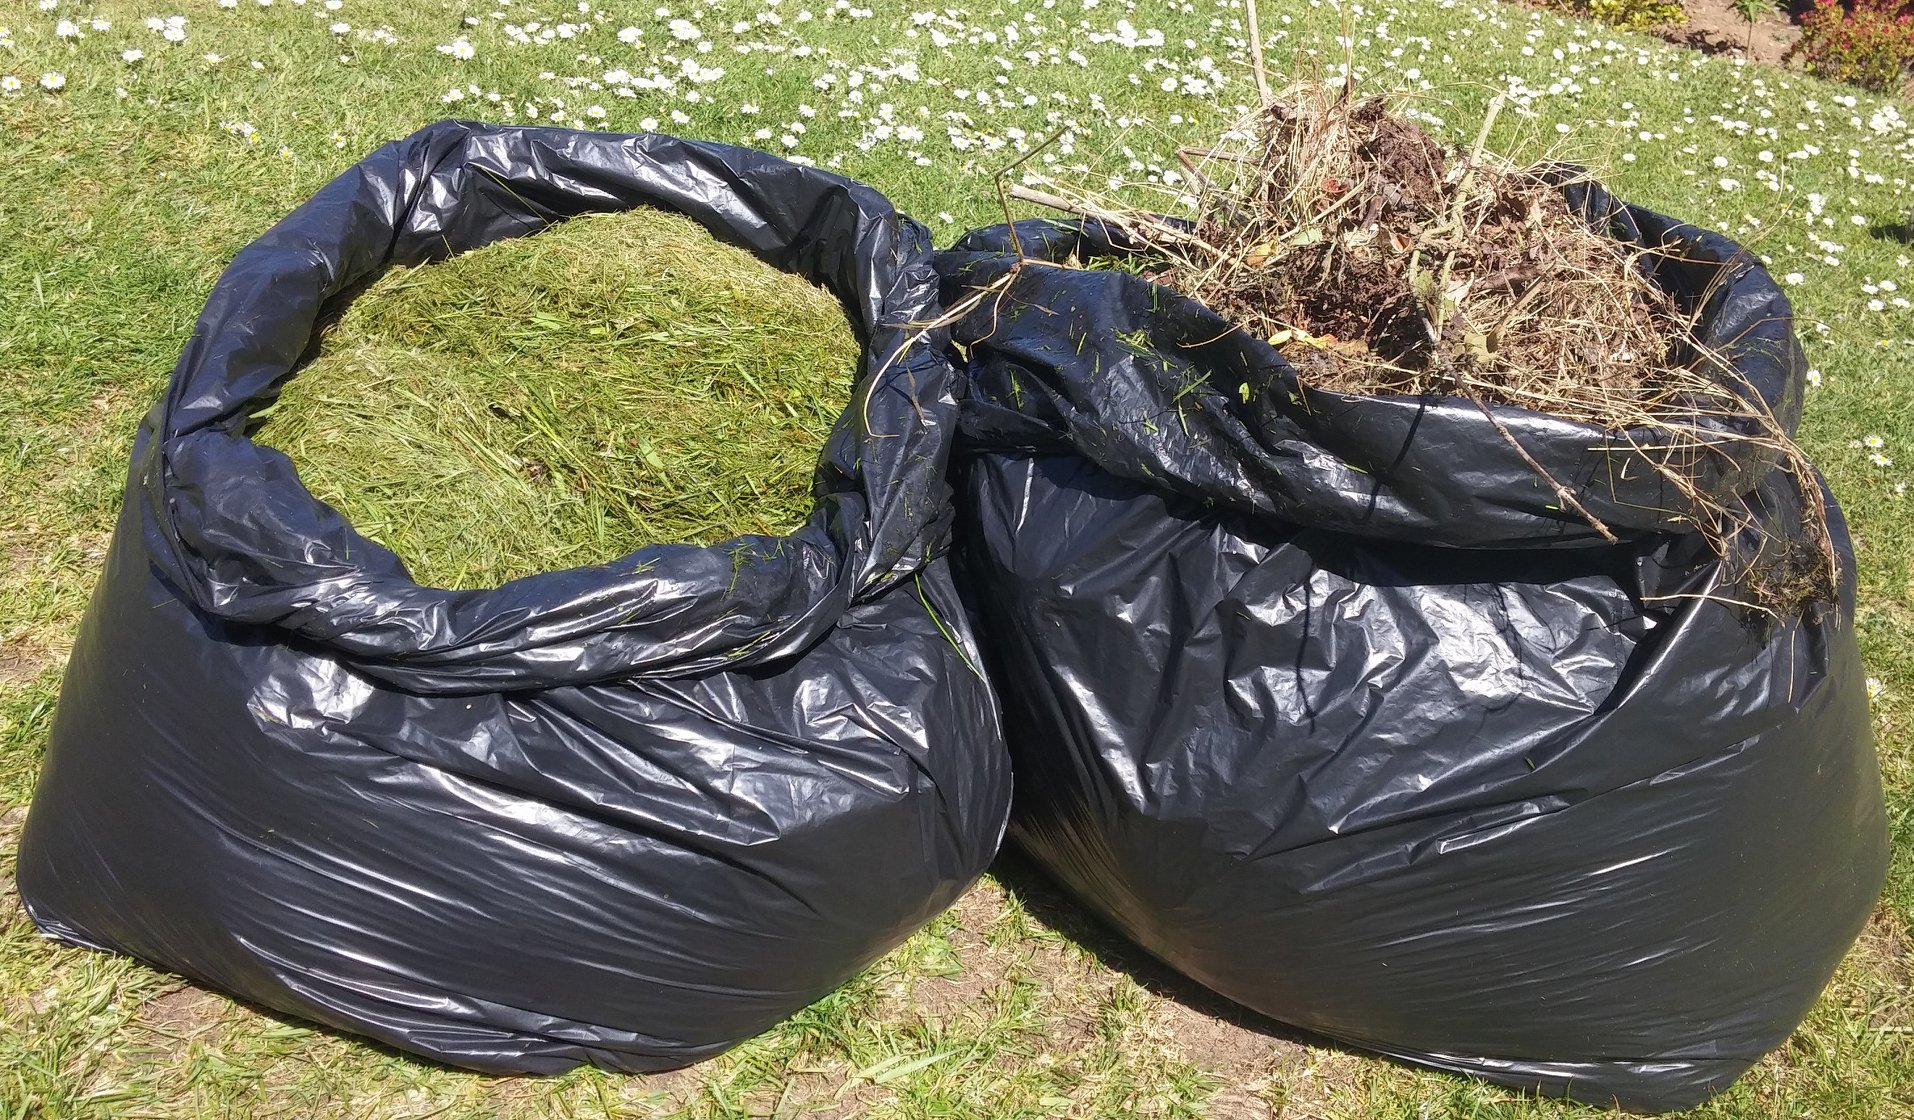 Garden waste points will be opened up in the north-east from Saturday